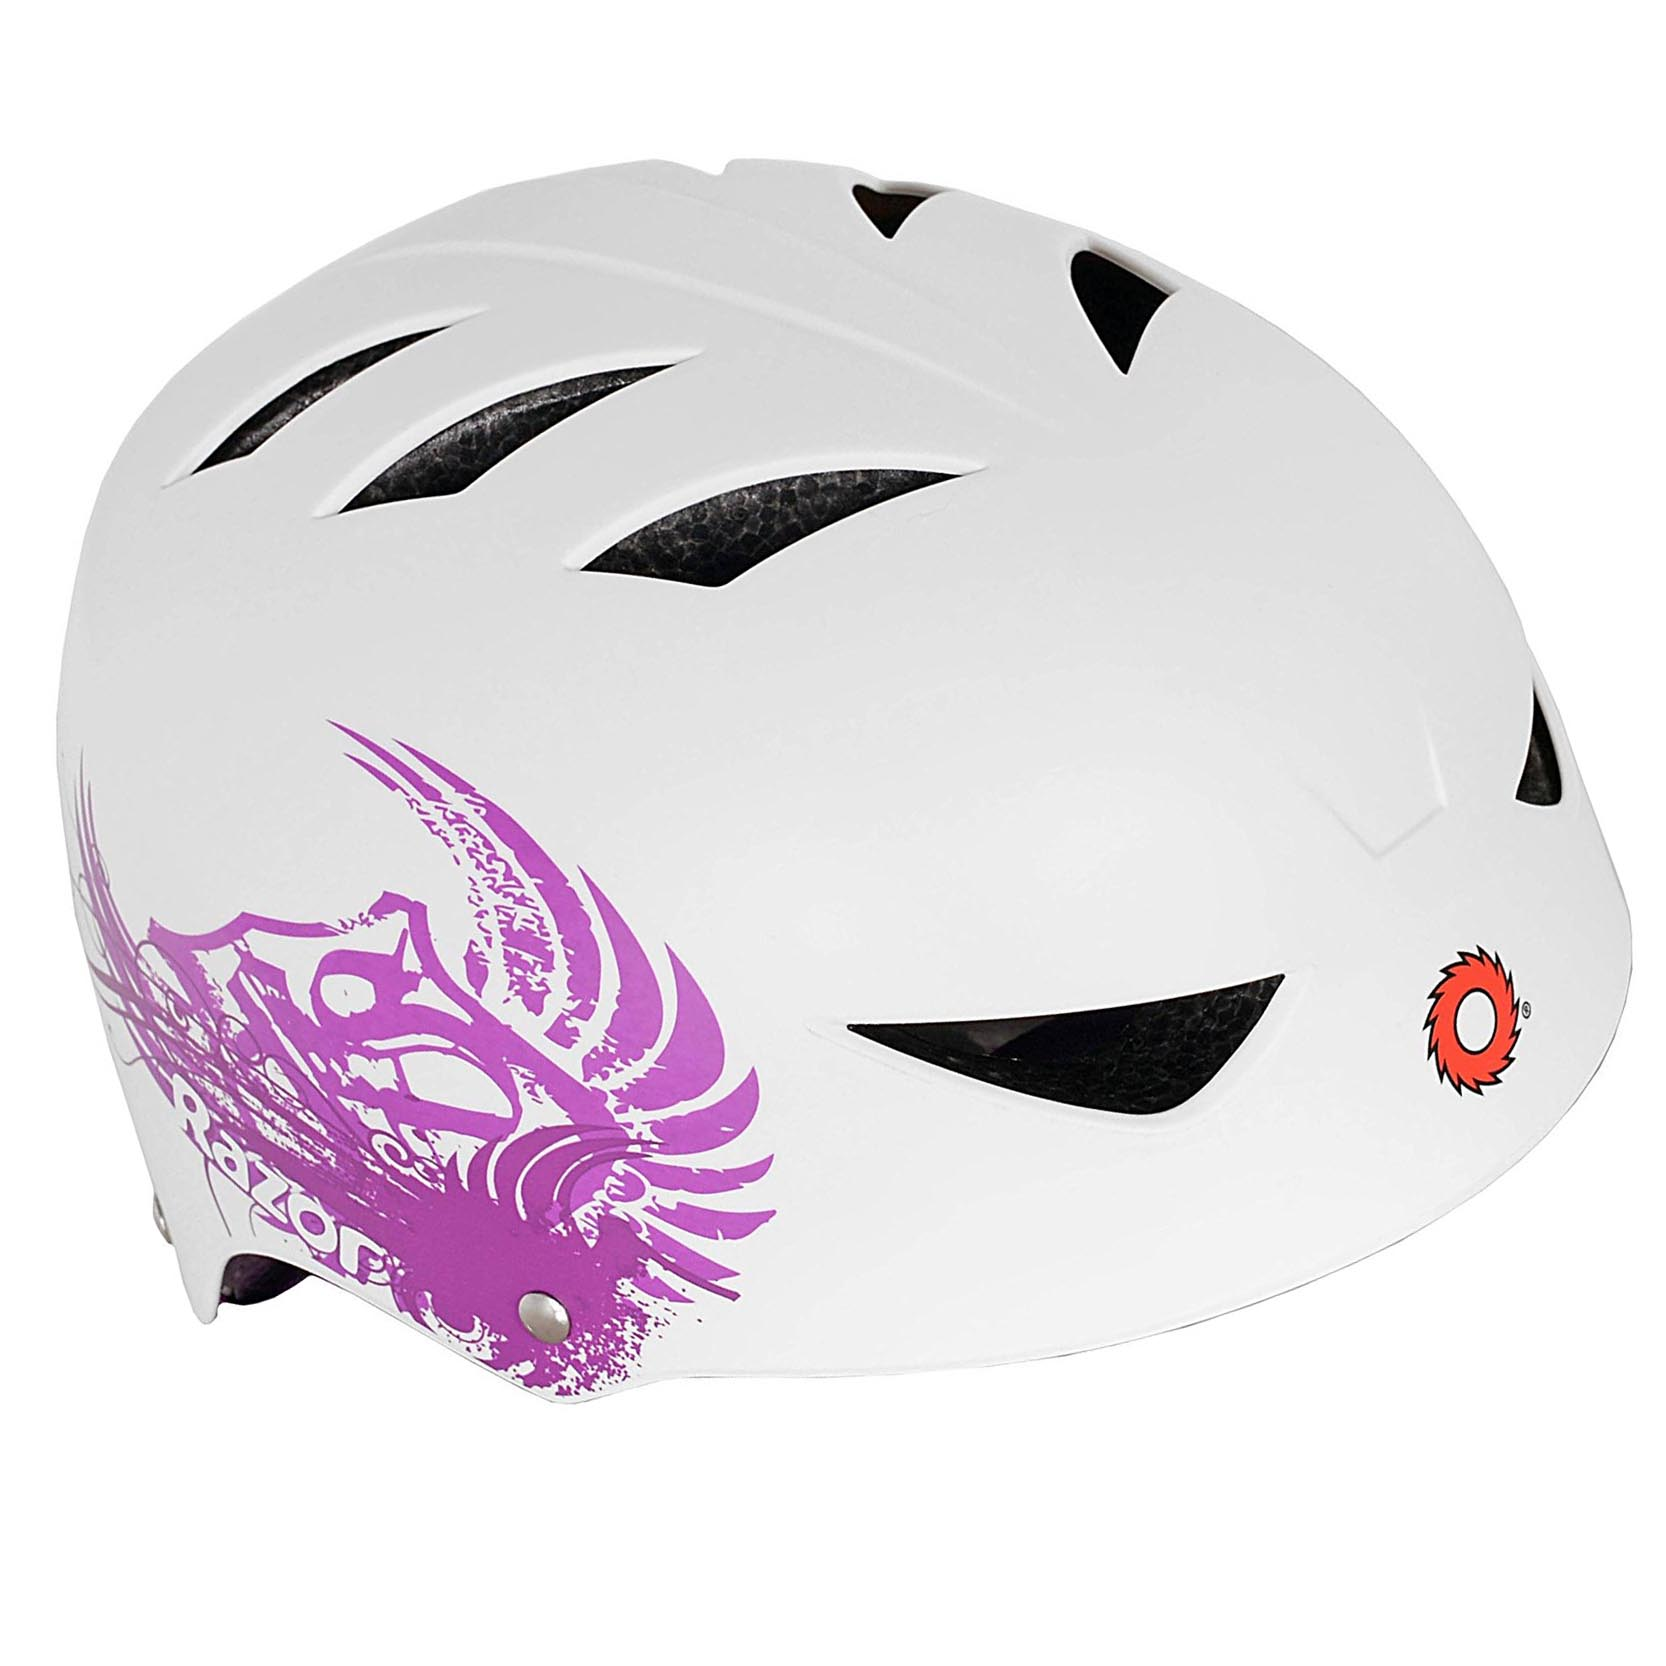 Razor V17 Youth, Multi-Sport Helmet, Neon Yellow, For Ages 8-14